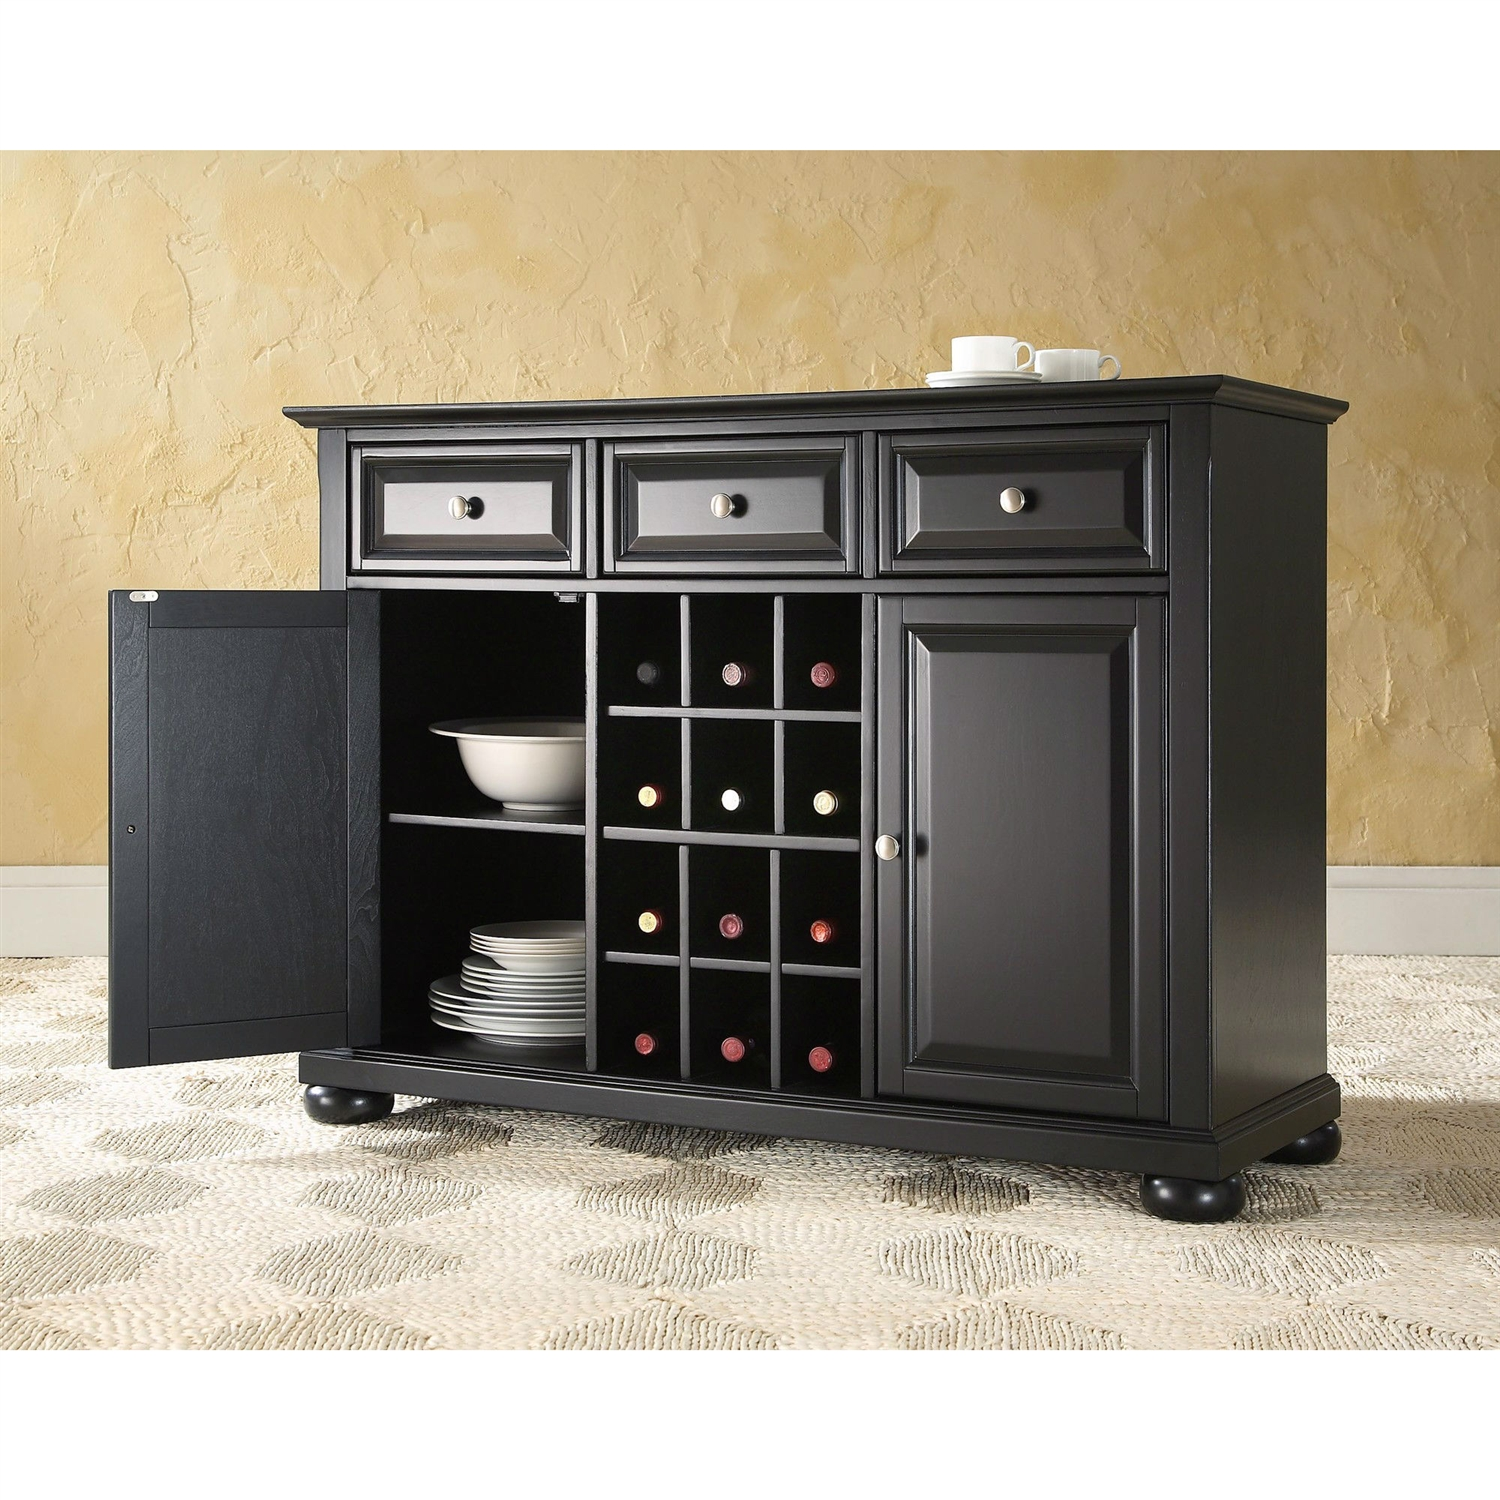 vintec base wind there wine rack post cabinet reviews related storage nz cabinets fascinating fabulous